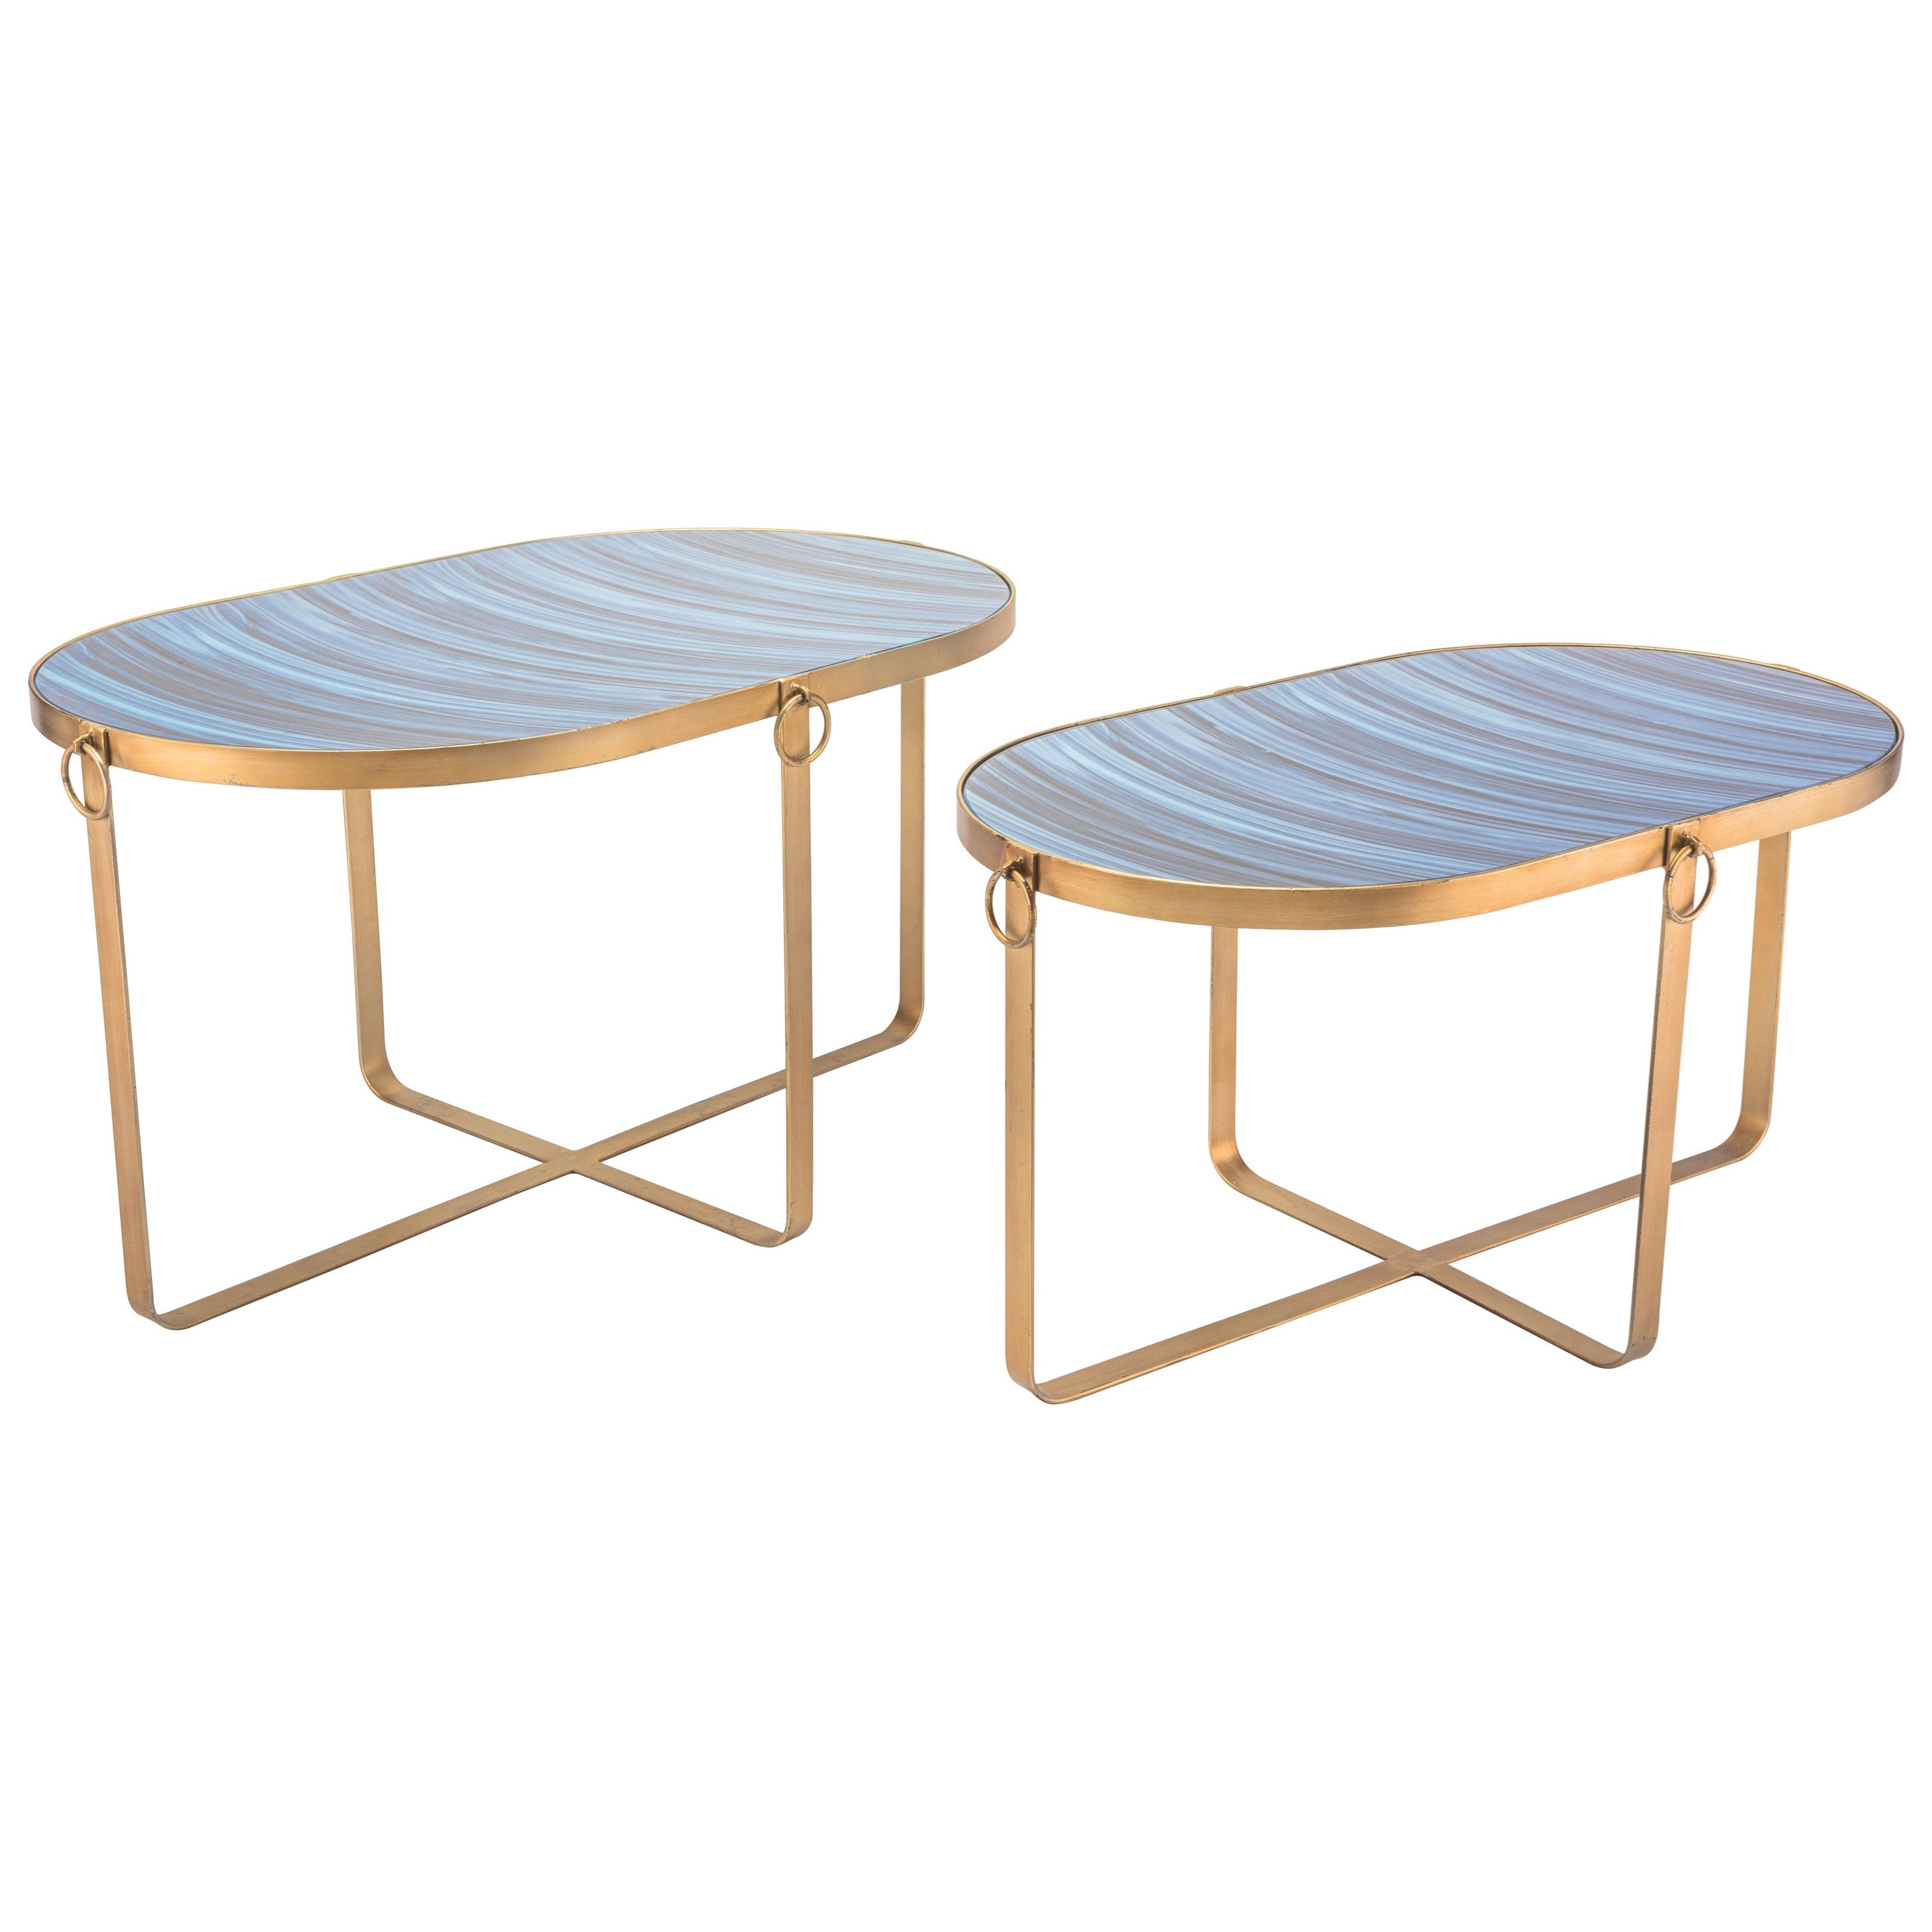 Zuo Accent Tables Zaphire Set of 2 Tables - Item Number: A10808